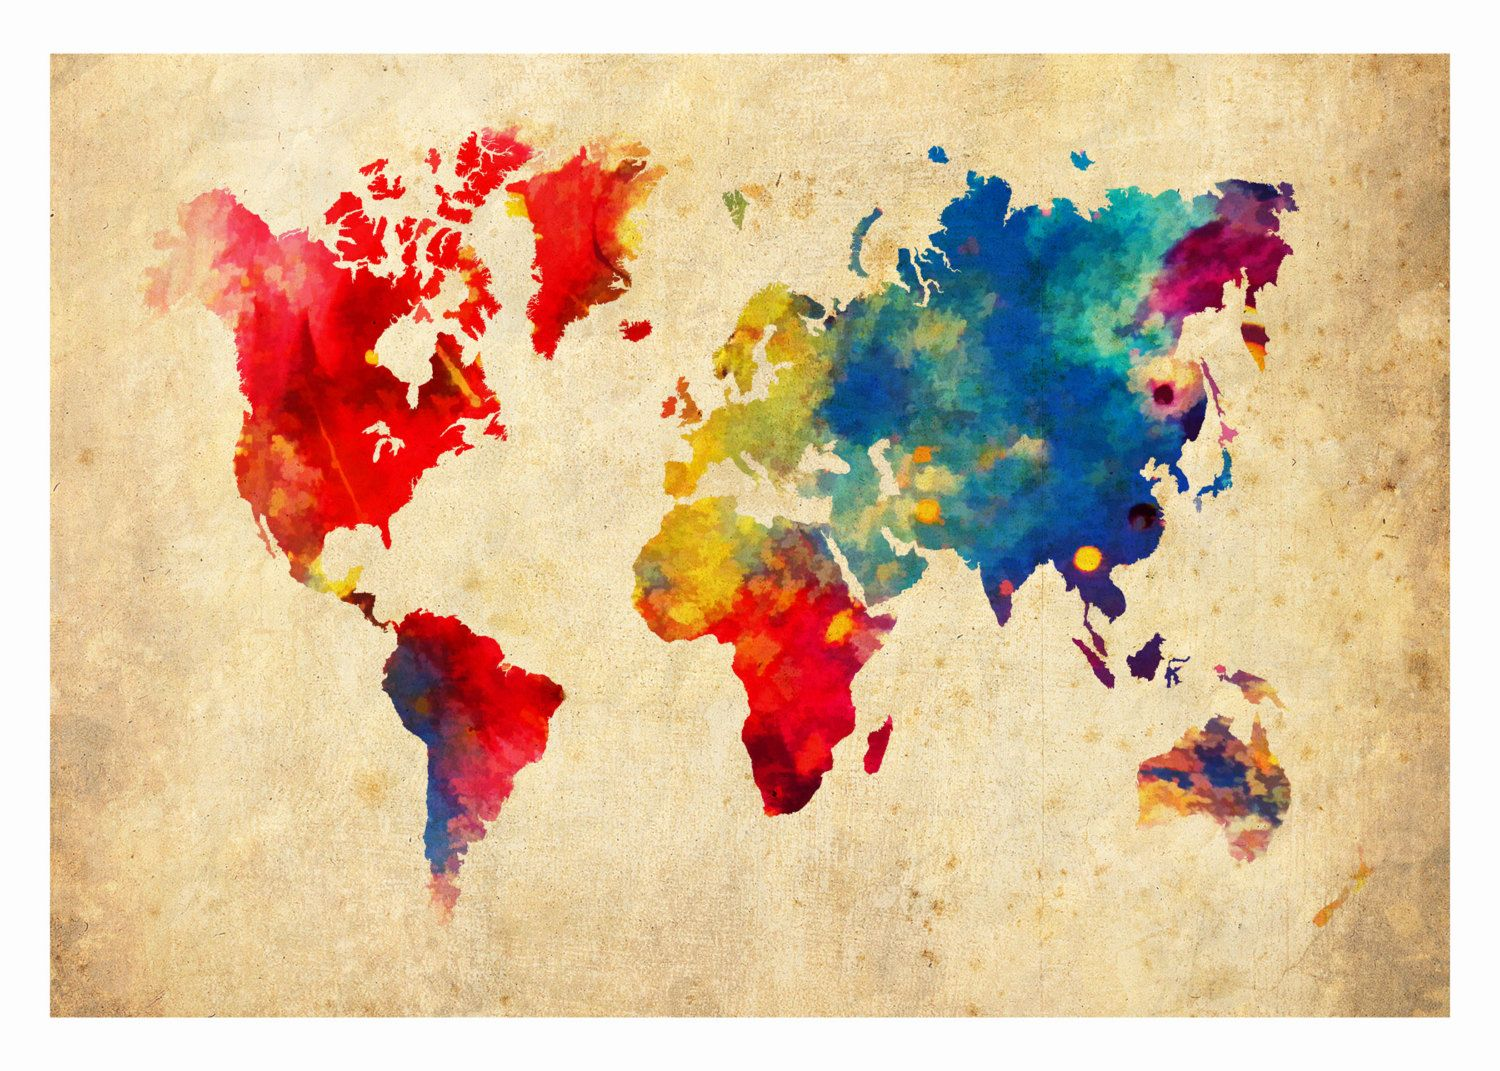 World Map Absract Grunge Vintage Print Poster Products I Love - Artsy world map poster